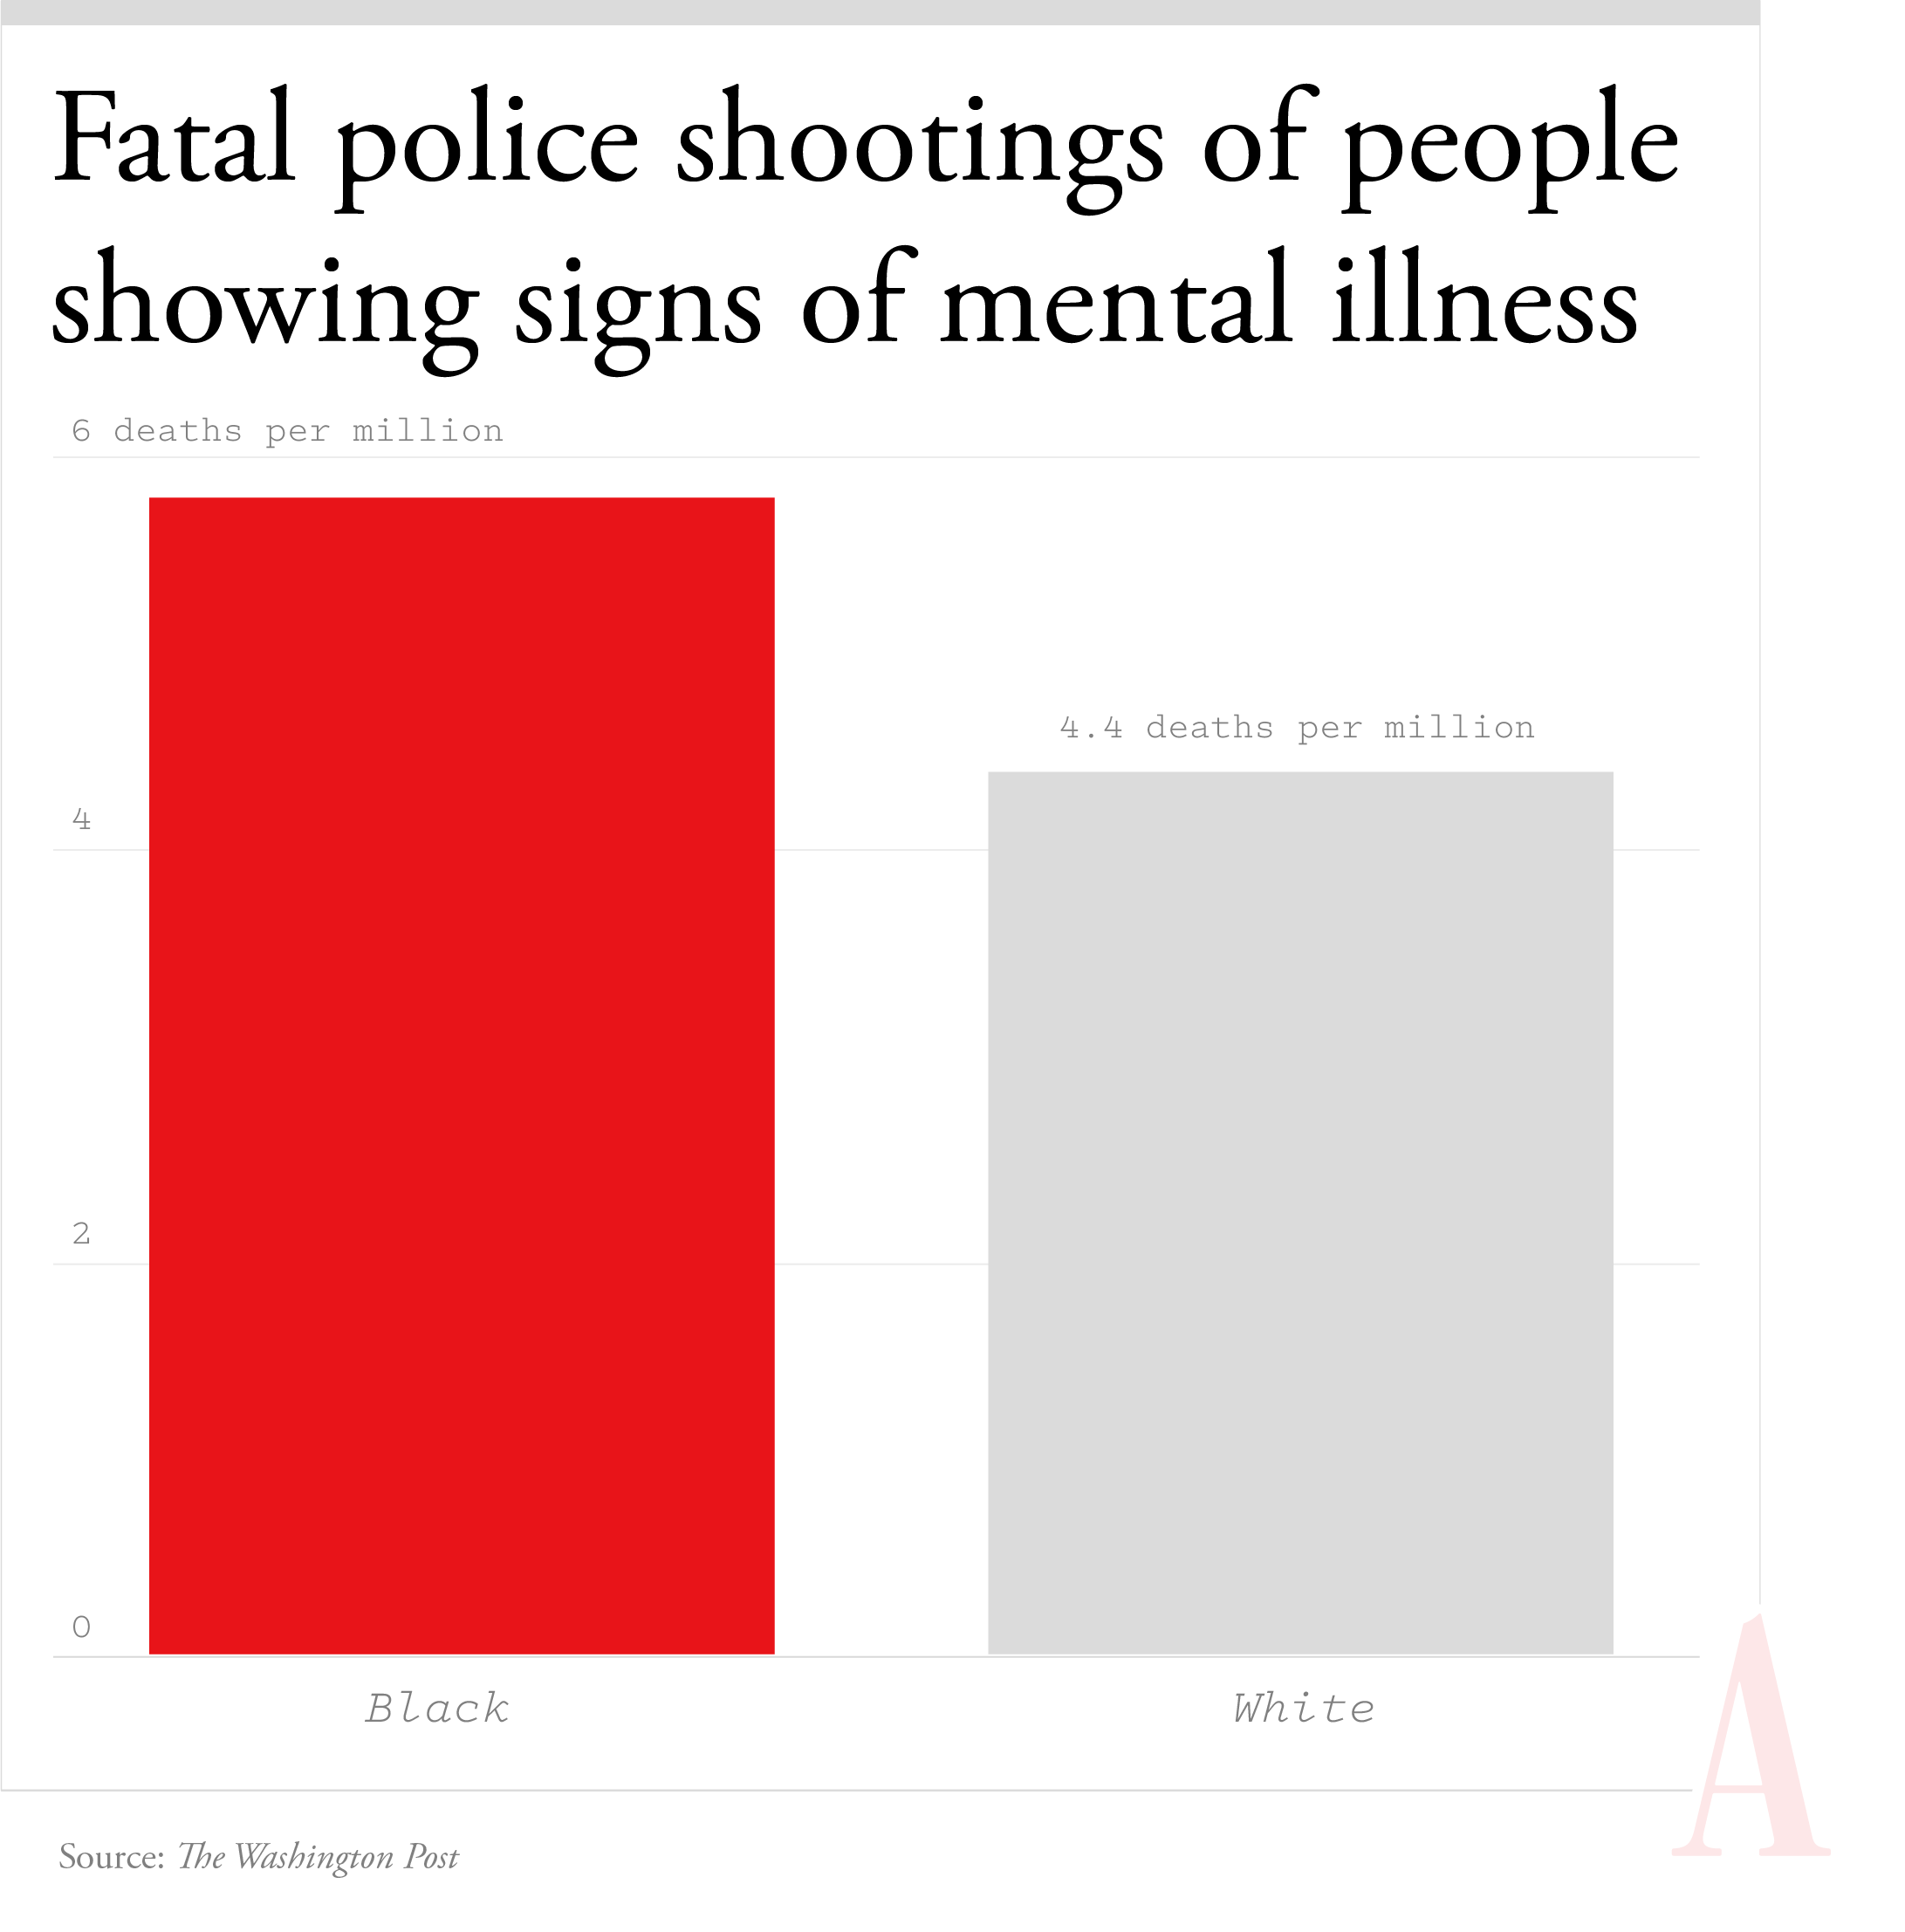 A bar chart showing that Black Americans displaying signs of mental illness are killed 1.3 times more often per million than white Americans displaying signs of mental illness